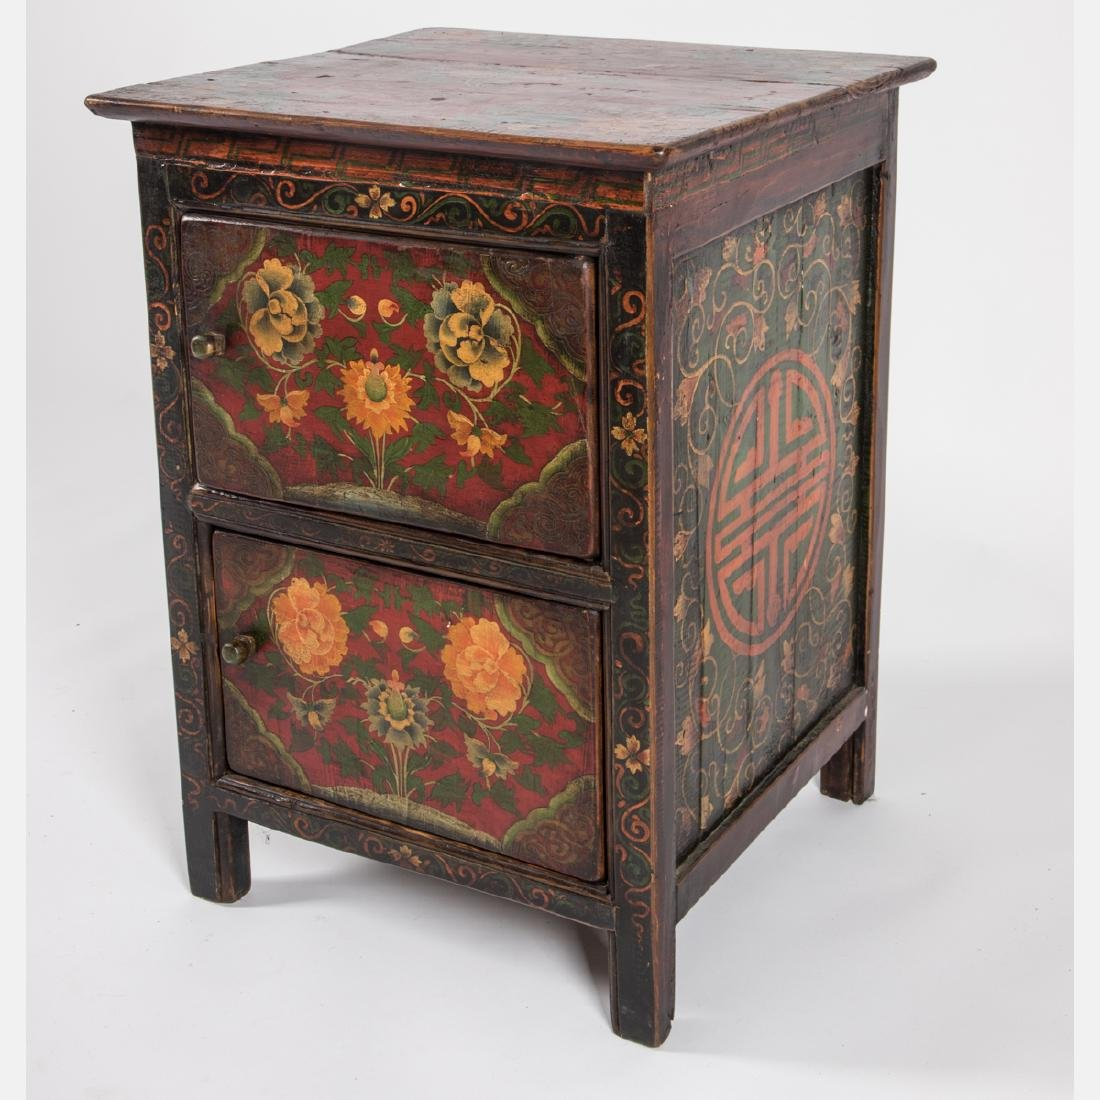 A Tibetan Painted Wood Two Drawer Side Table, 20th